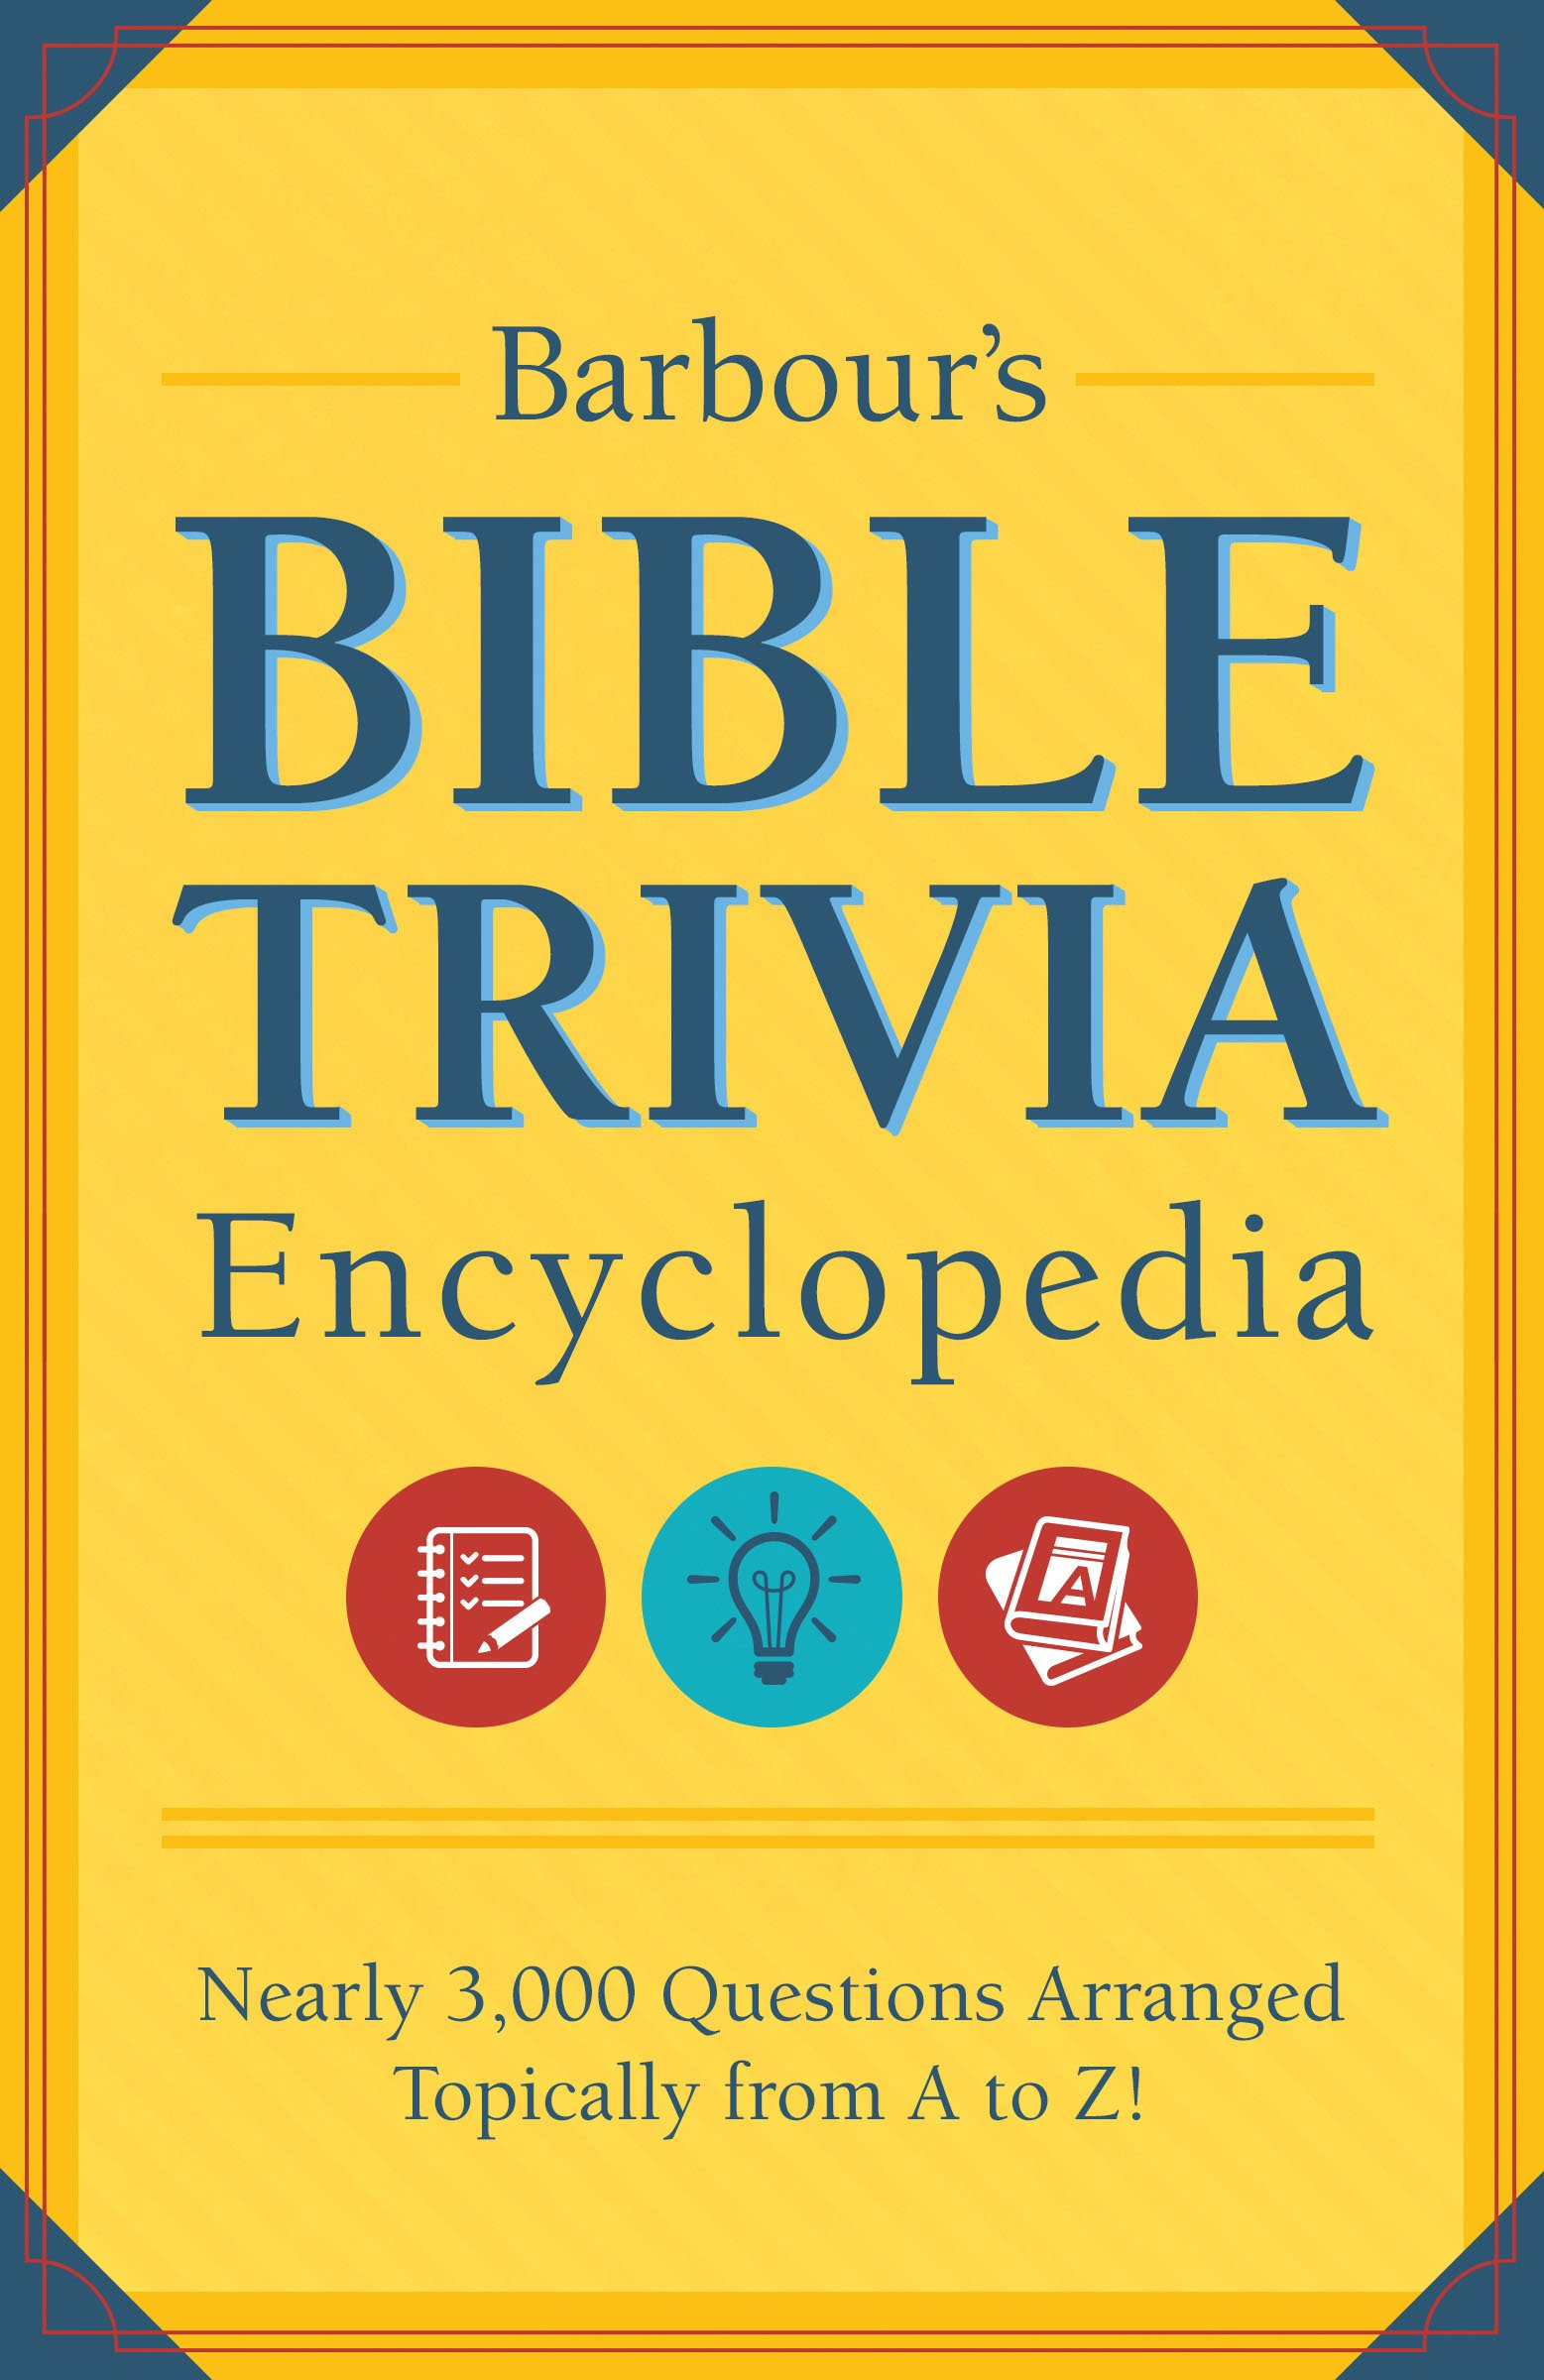 Barbour's Bible Trivia Encyclopedia: Nearly 3, 000 Questions Arranged  Topically from A to Z!: Compiled by Barbour Staff: 9781634093088:  Amazon.com: Books